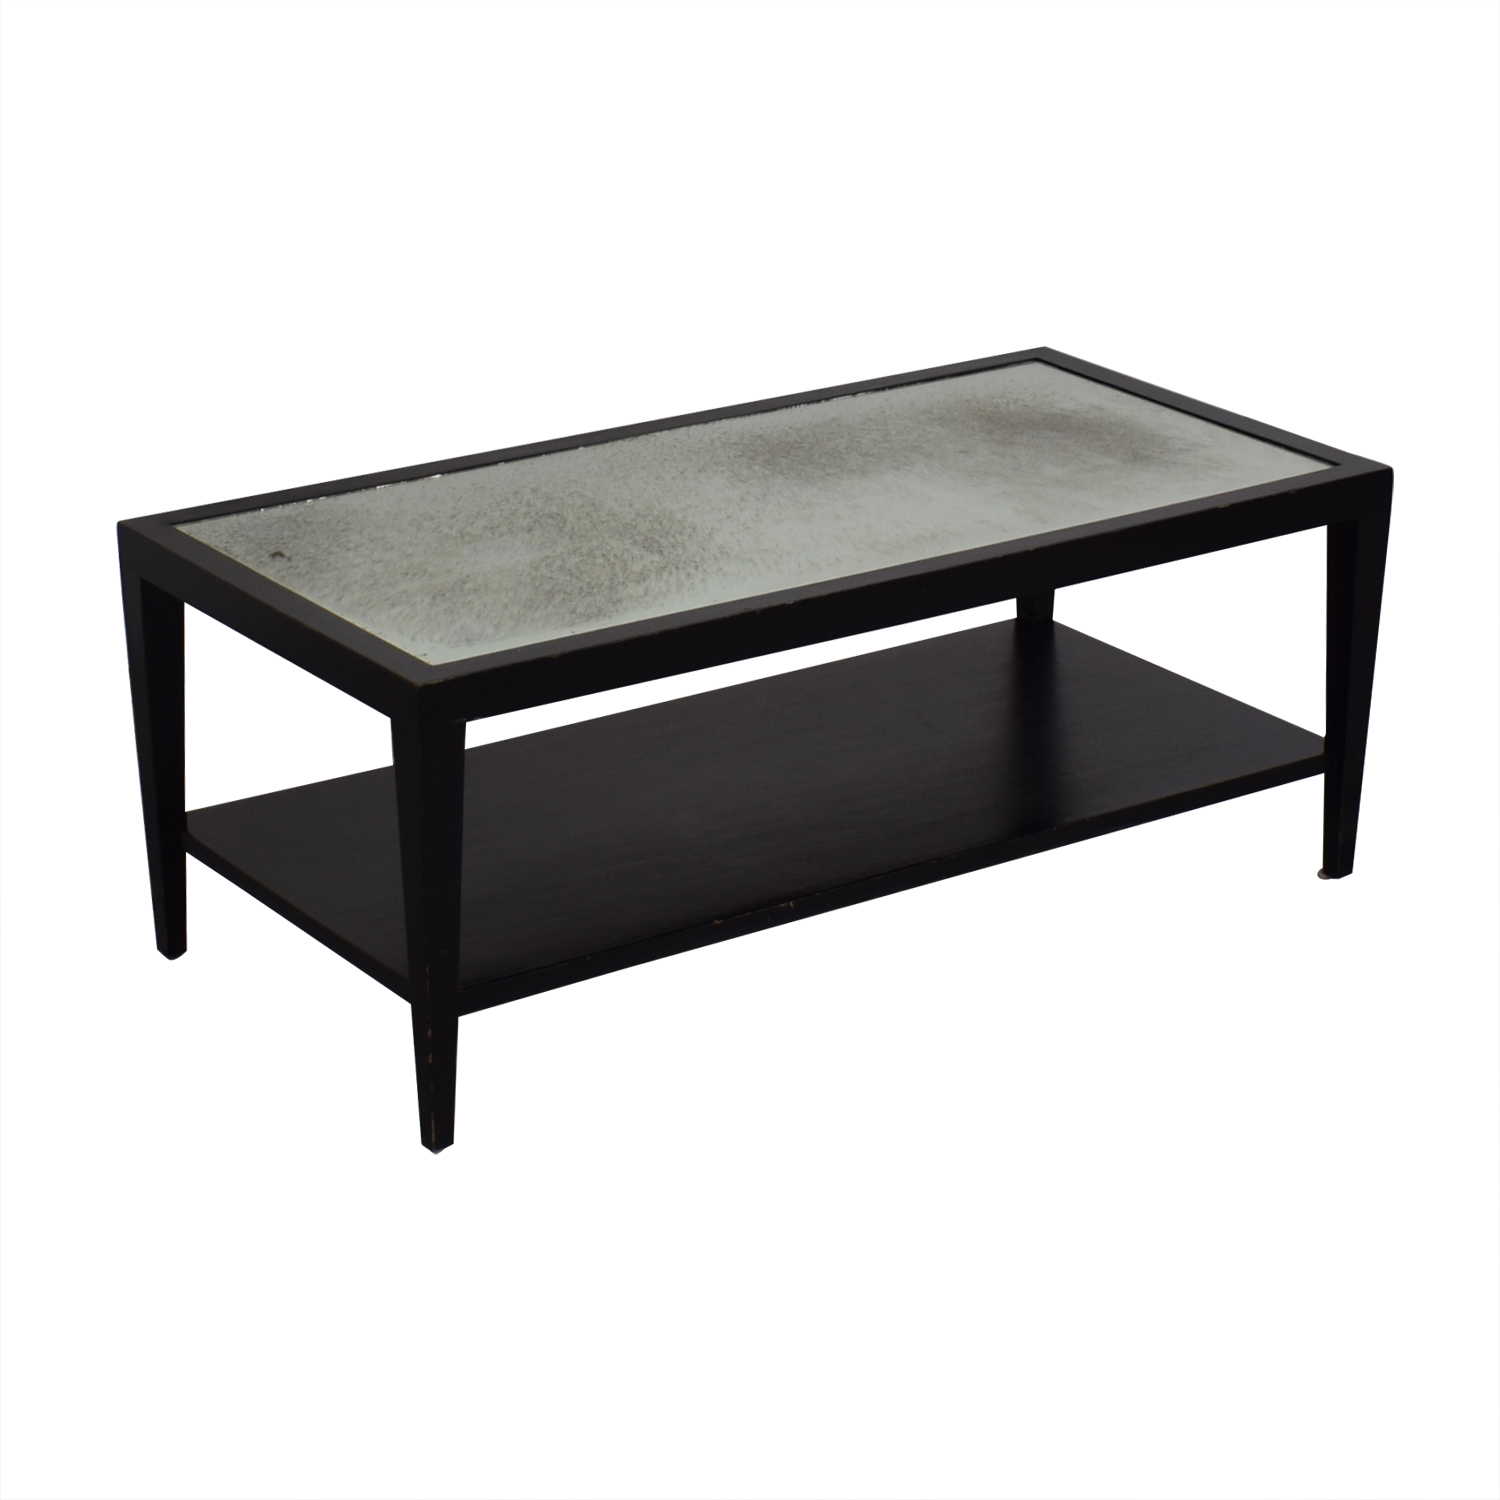 shop Crate & Barrel Two Tiered Coffee Table Crate & Barrel Coffee Tables